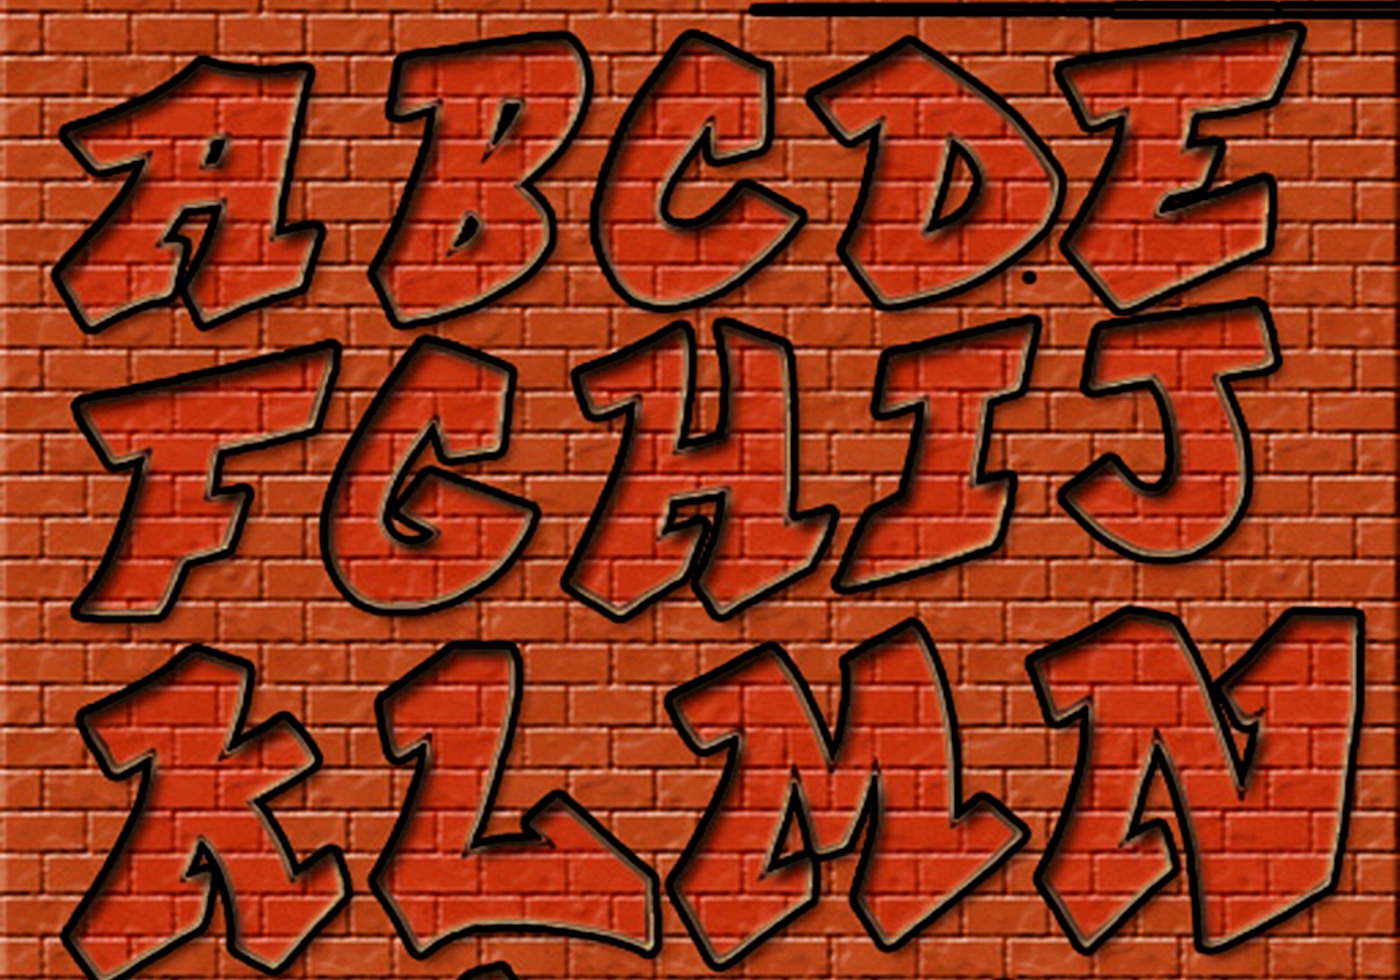 Graffiti letters free photoshop brushes at brusheezy - Graffiti alfabet ...